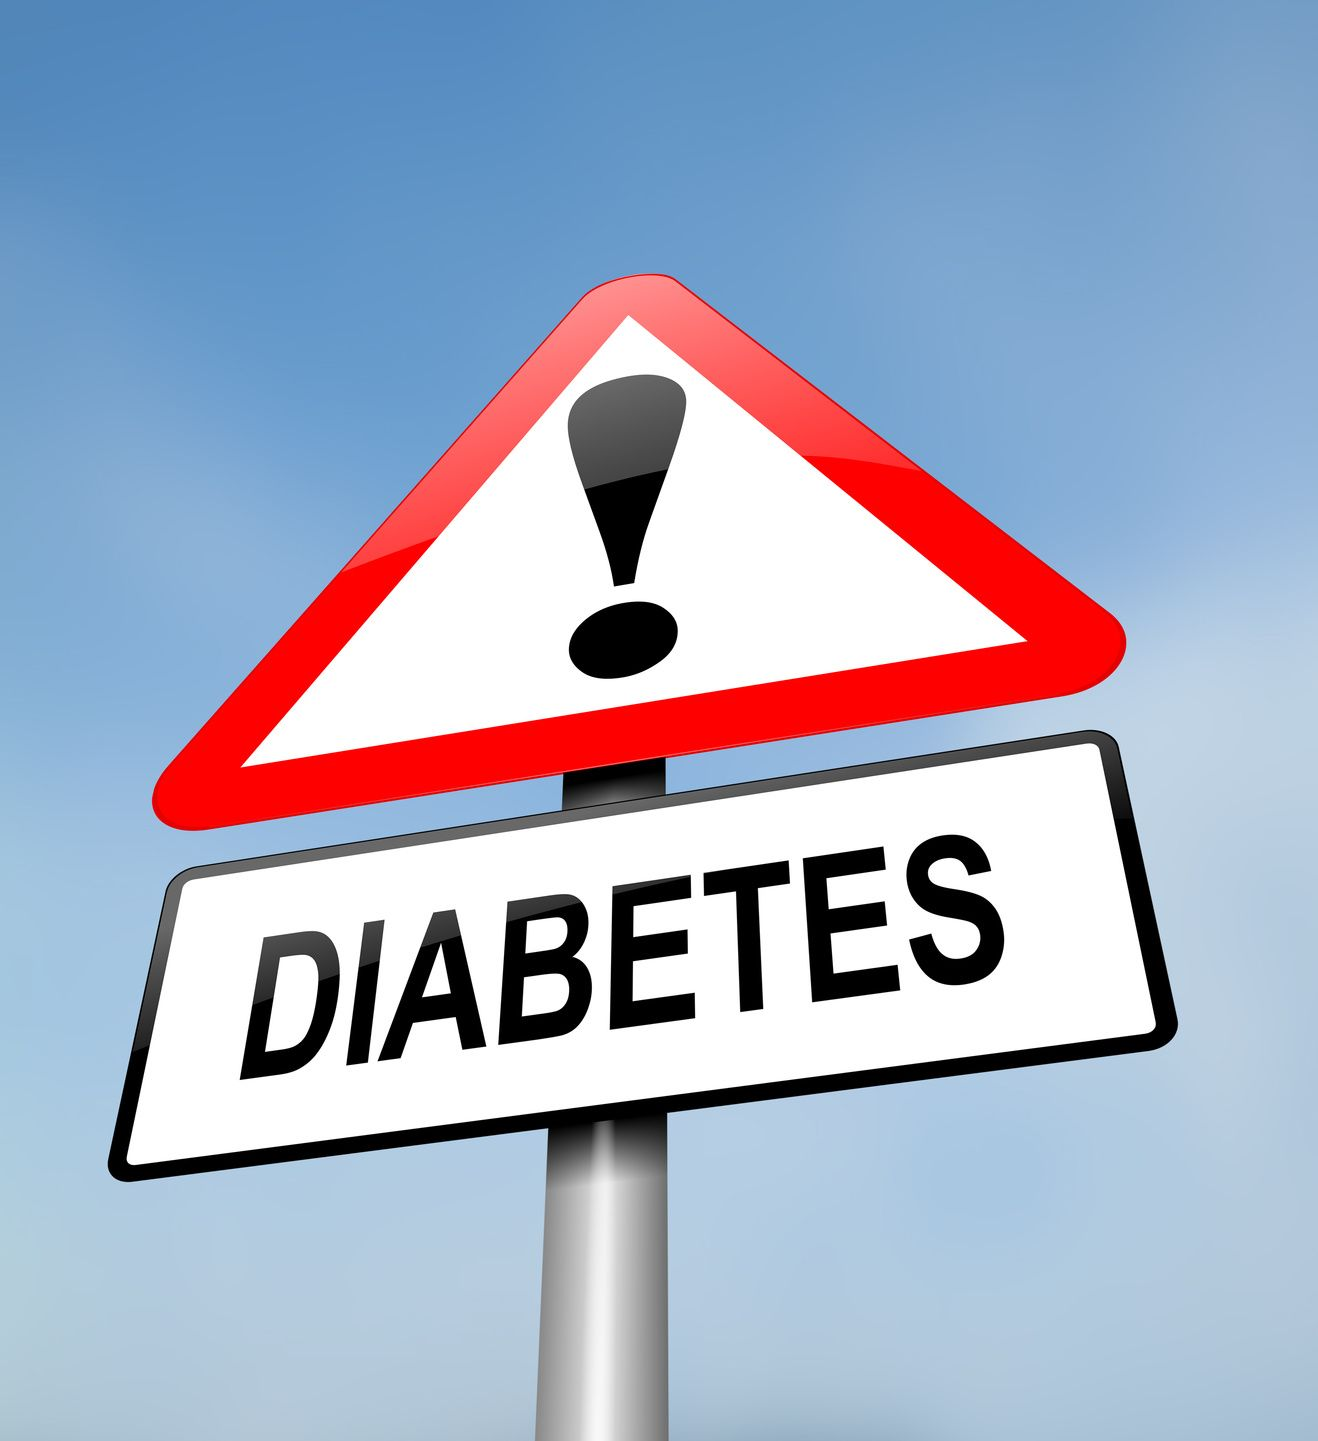 Diabetes: Do You or a Loved One Have It?